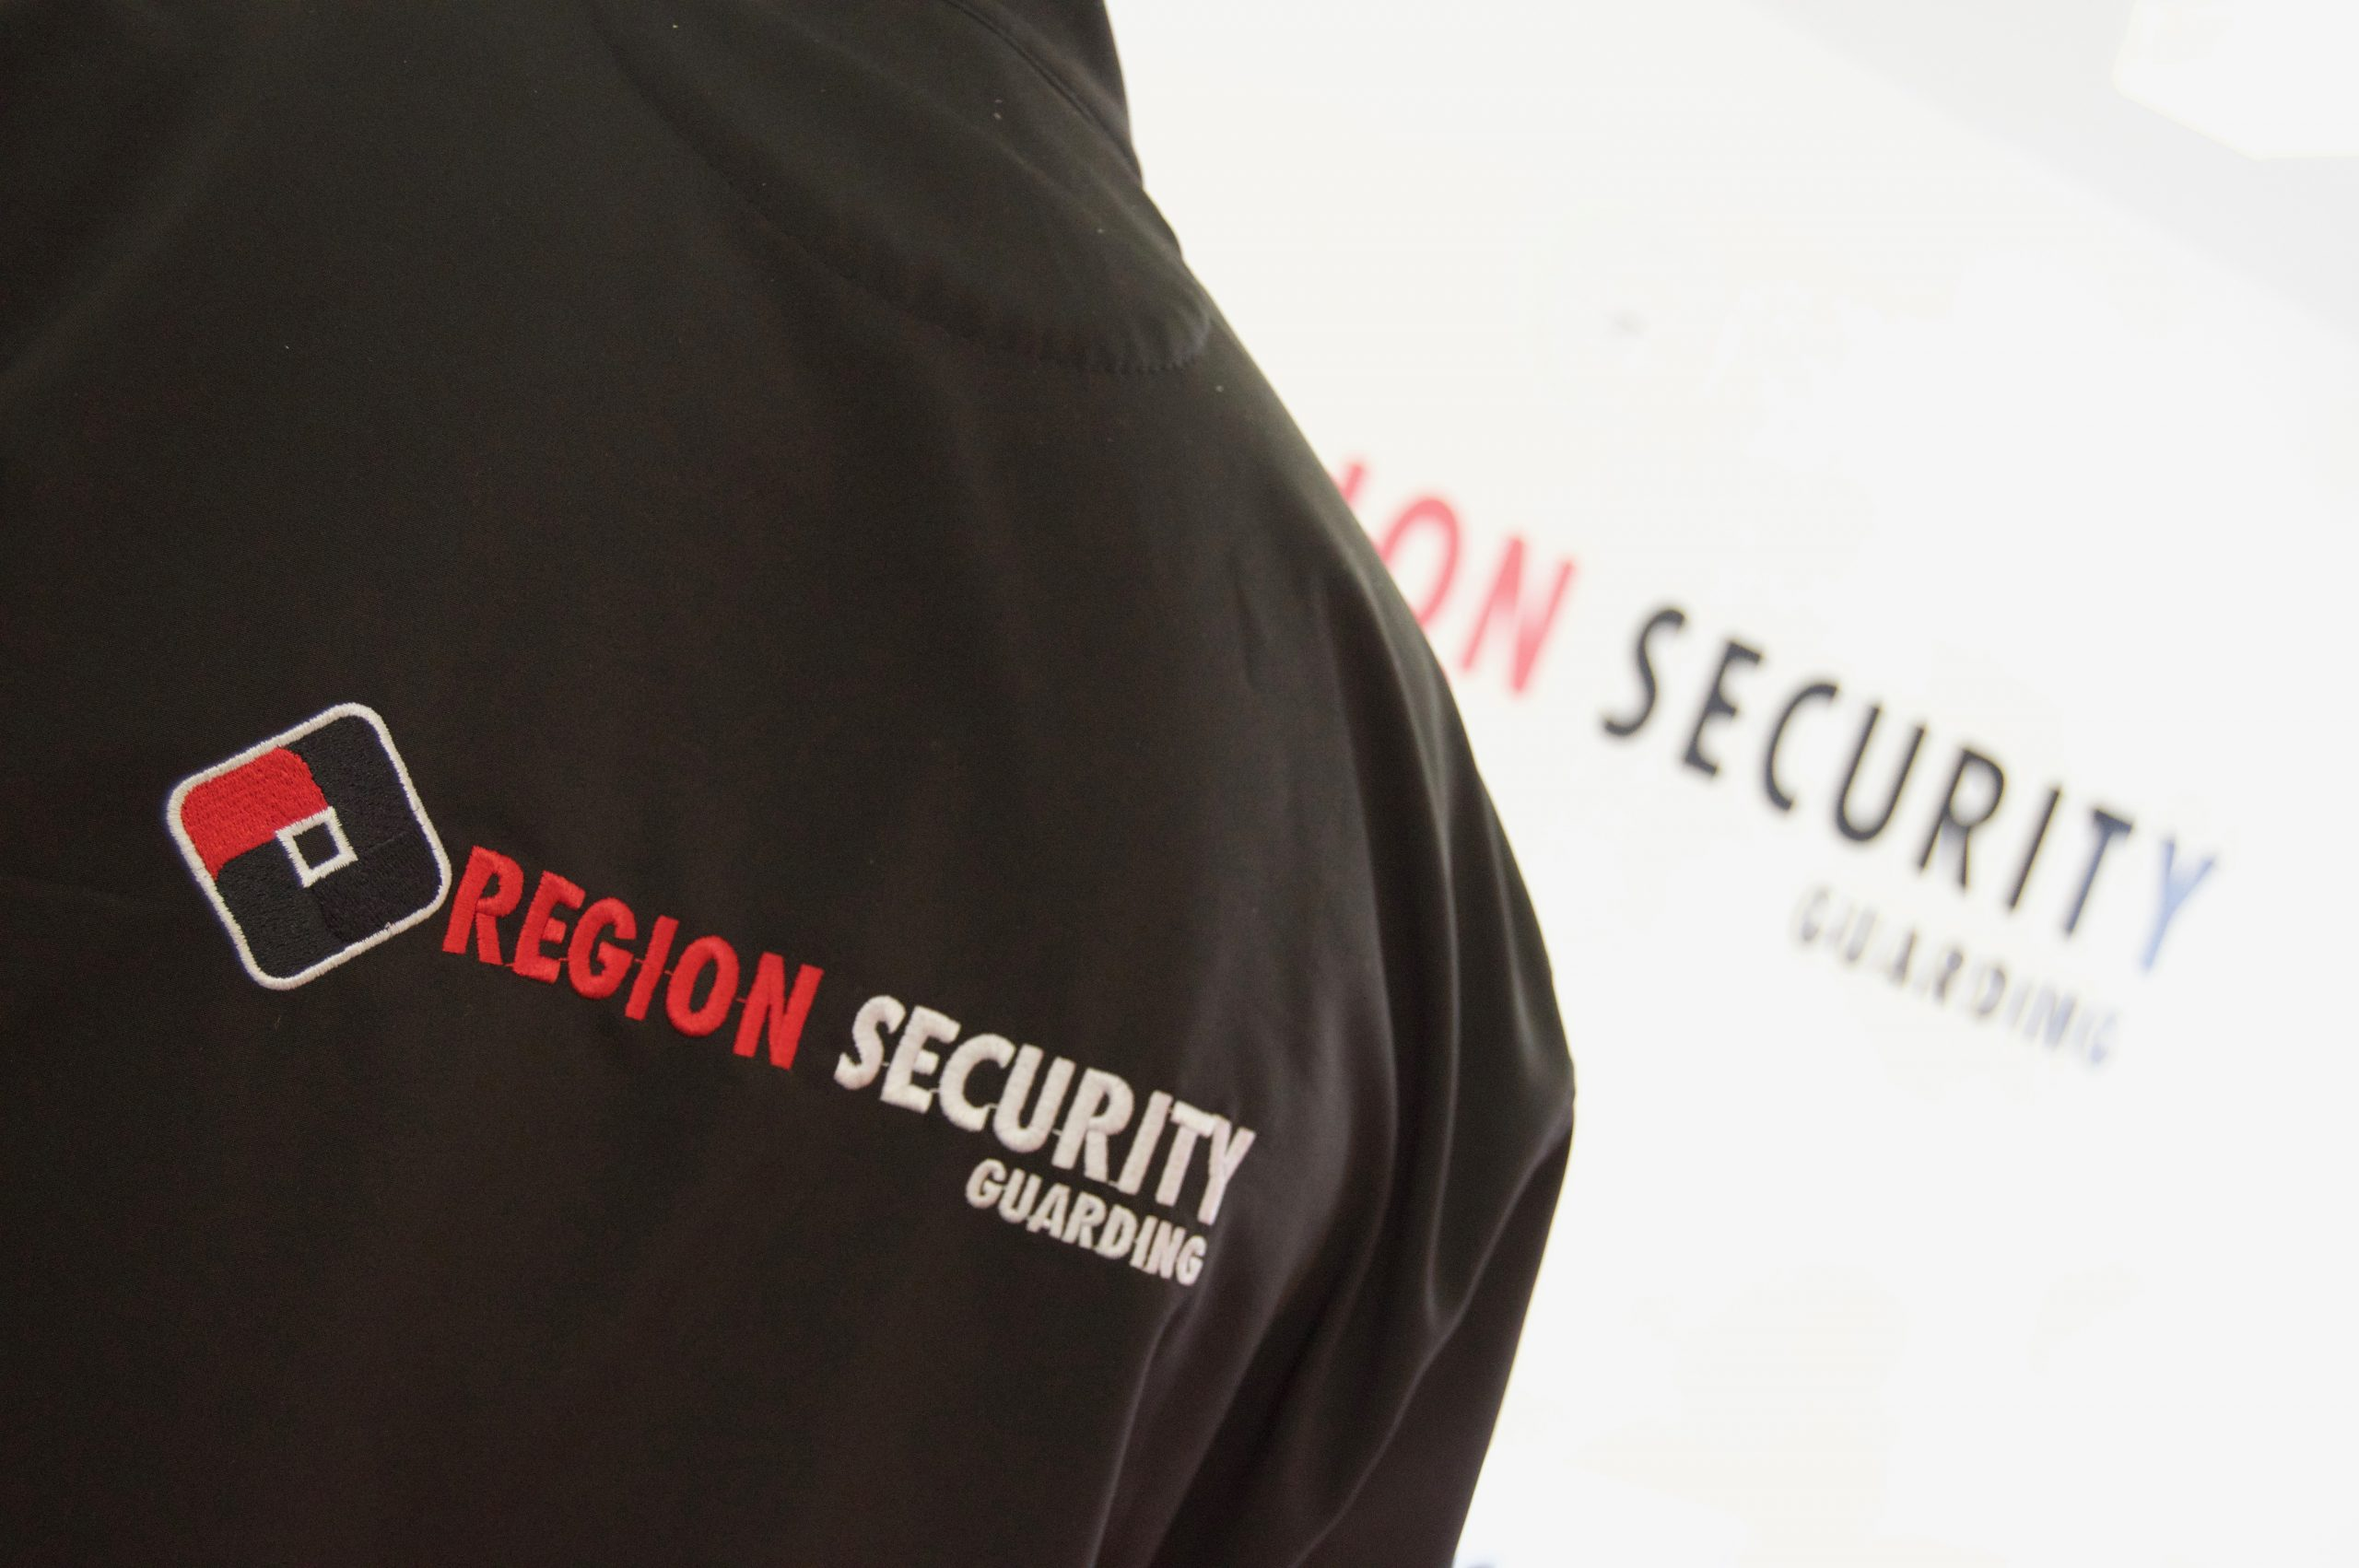 gatehouse security guards